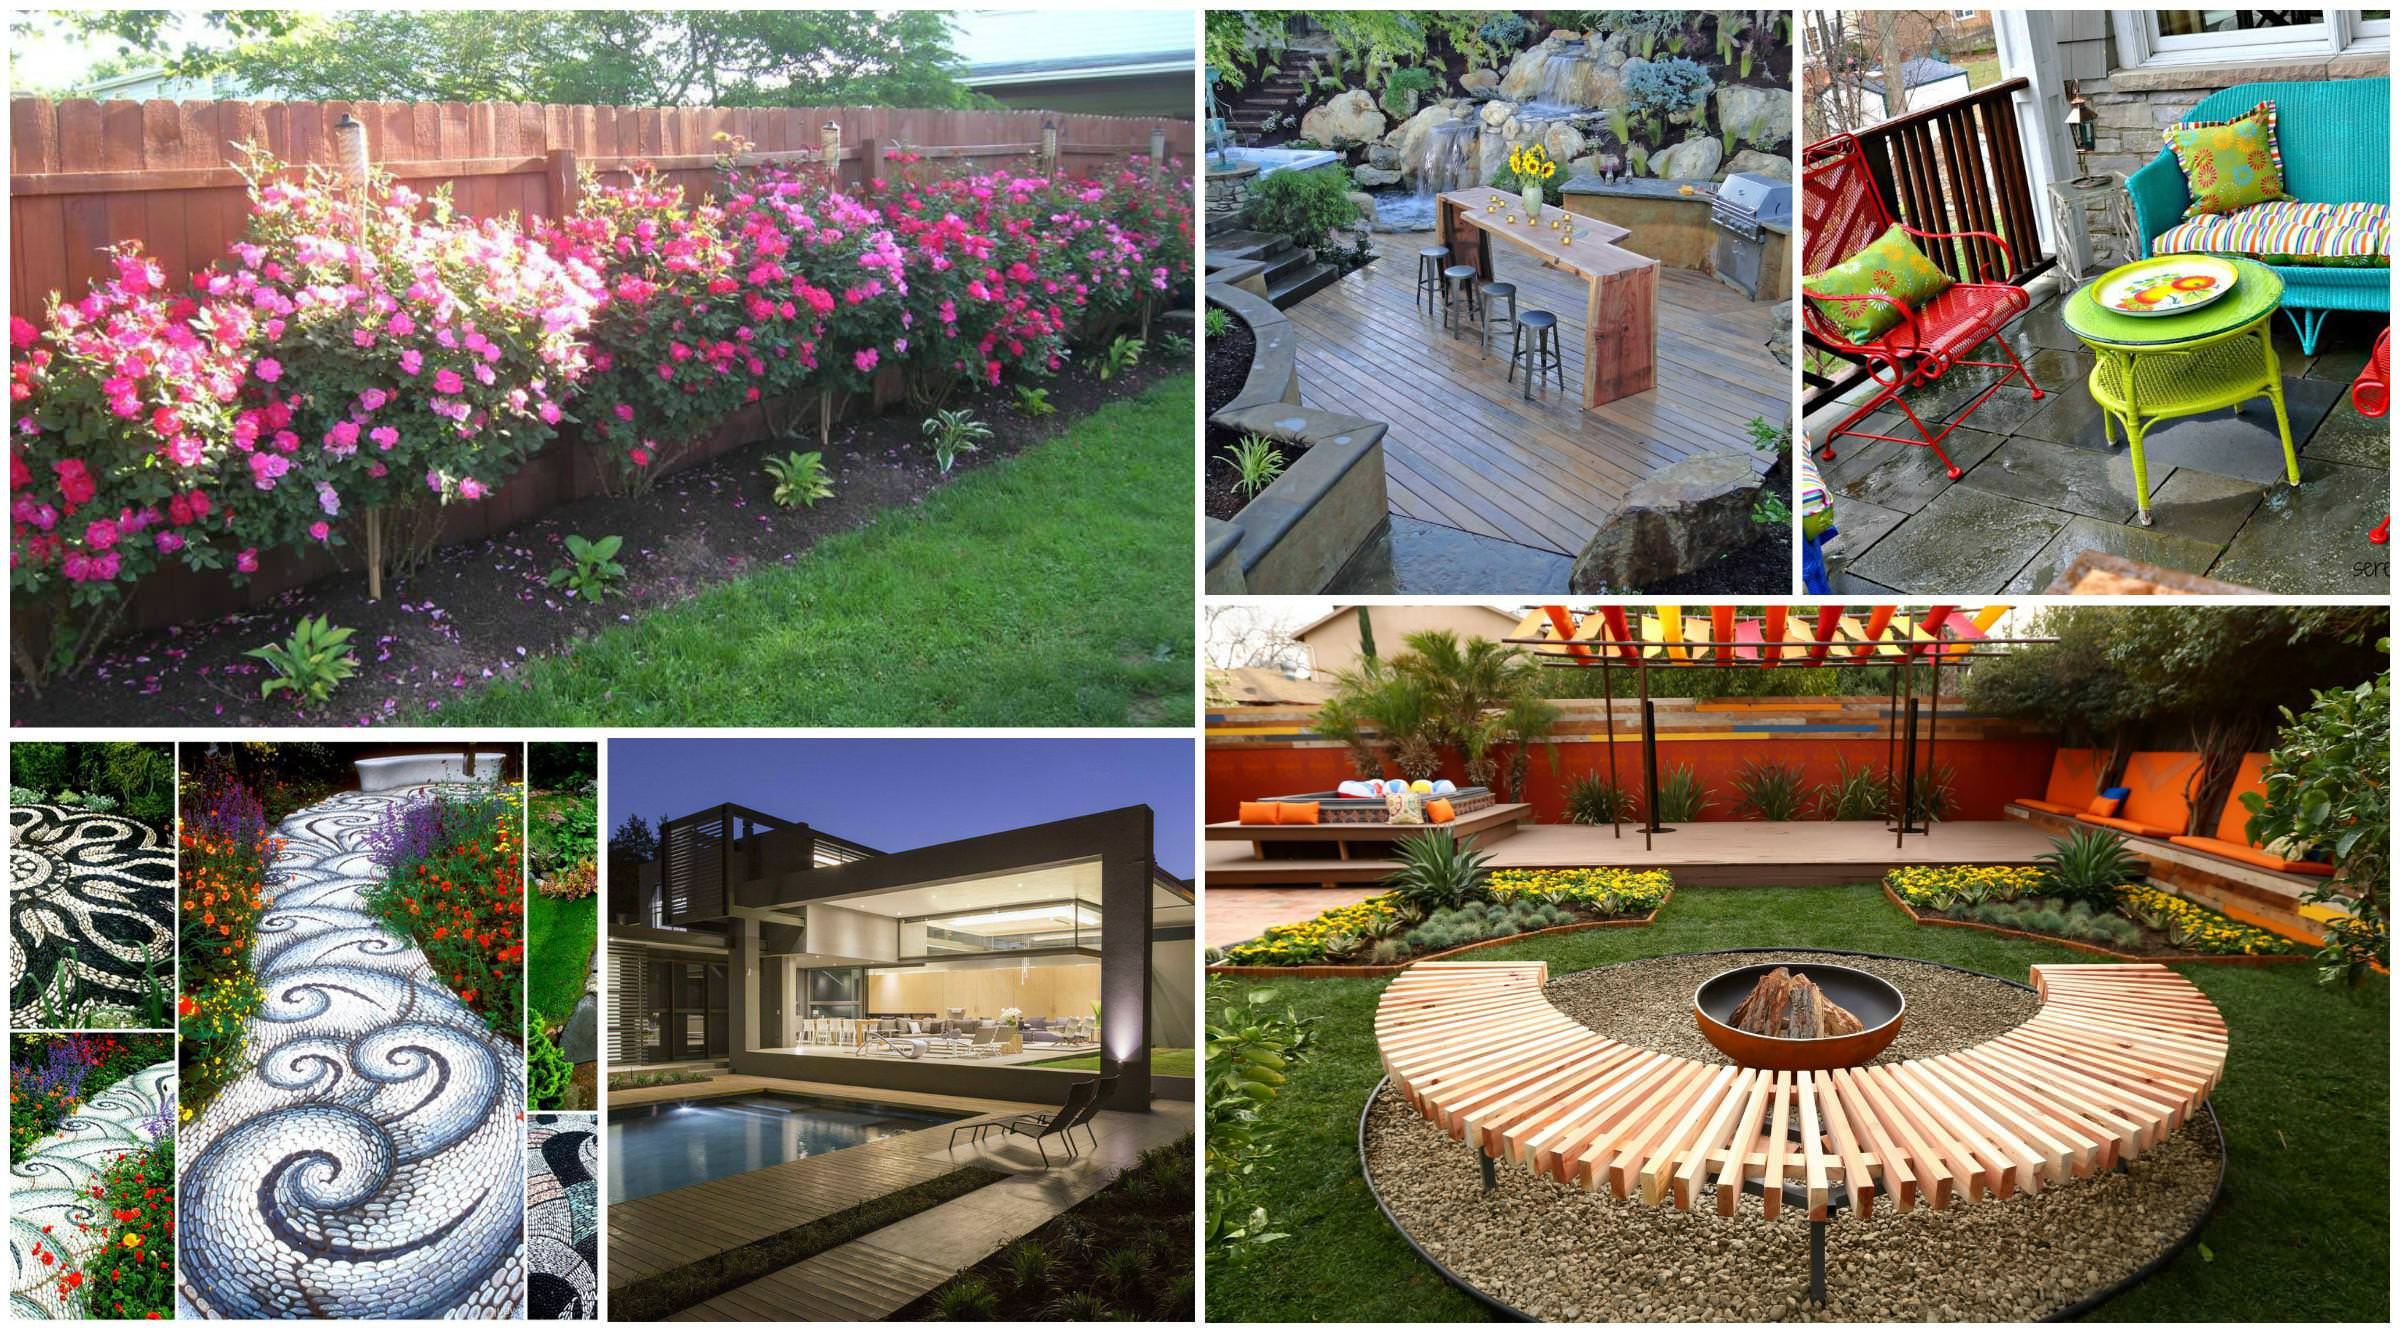 how to diy backyard landscaping ideas and tips lugenda with regard to 12 clever concepts of how to make diy backyard landscaping via Simphome.com